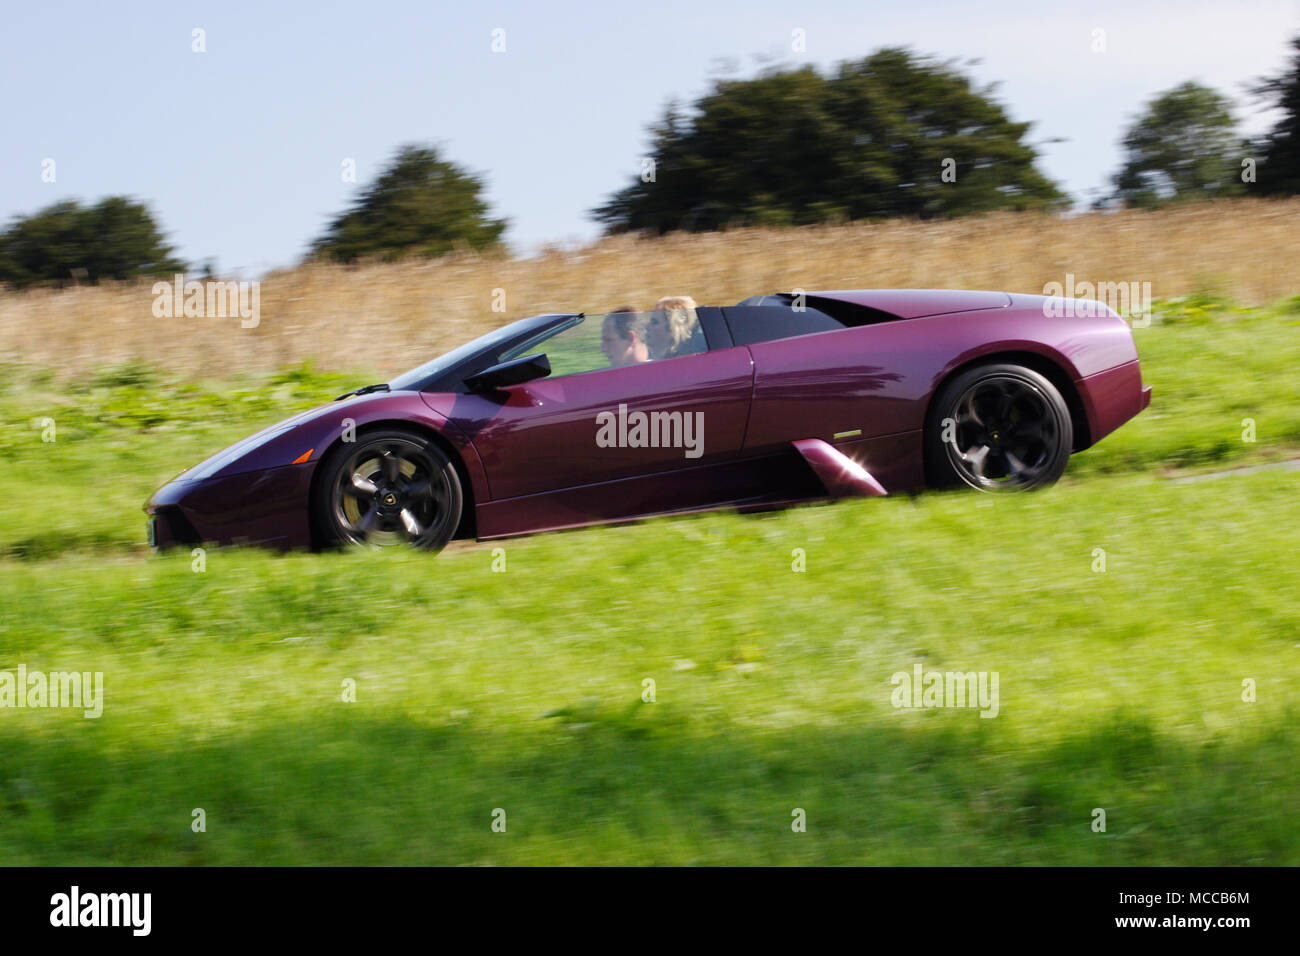 Low Angle Profile Side View Of A Purple Lamborghini Murcielago